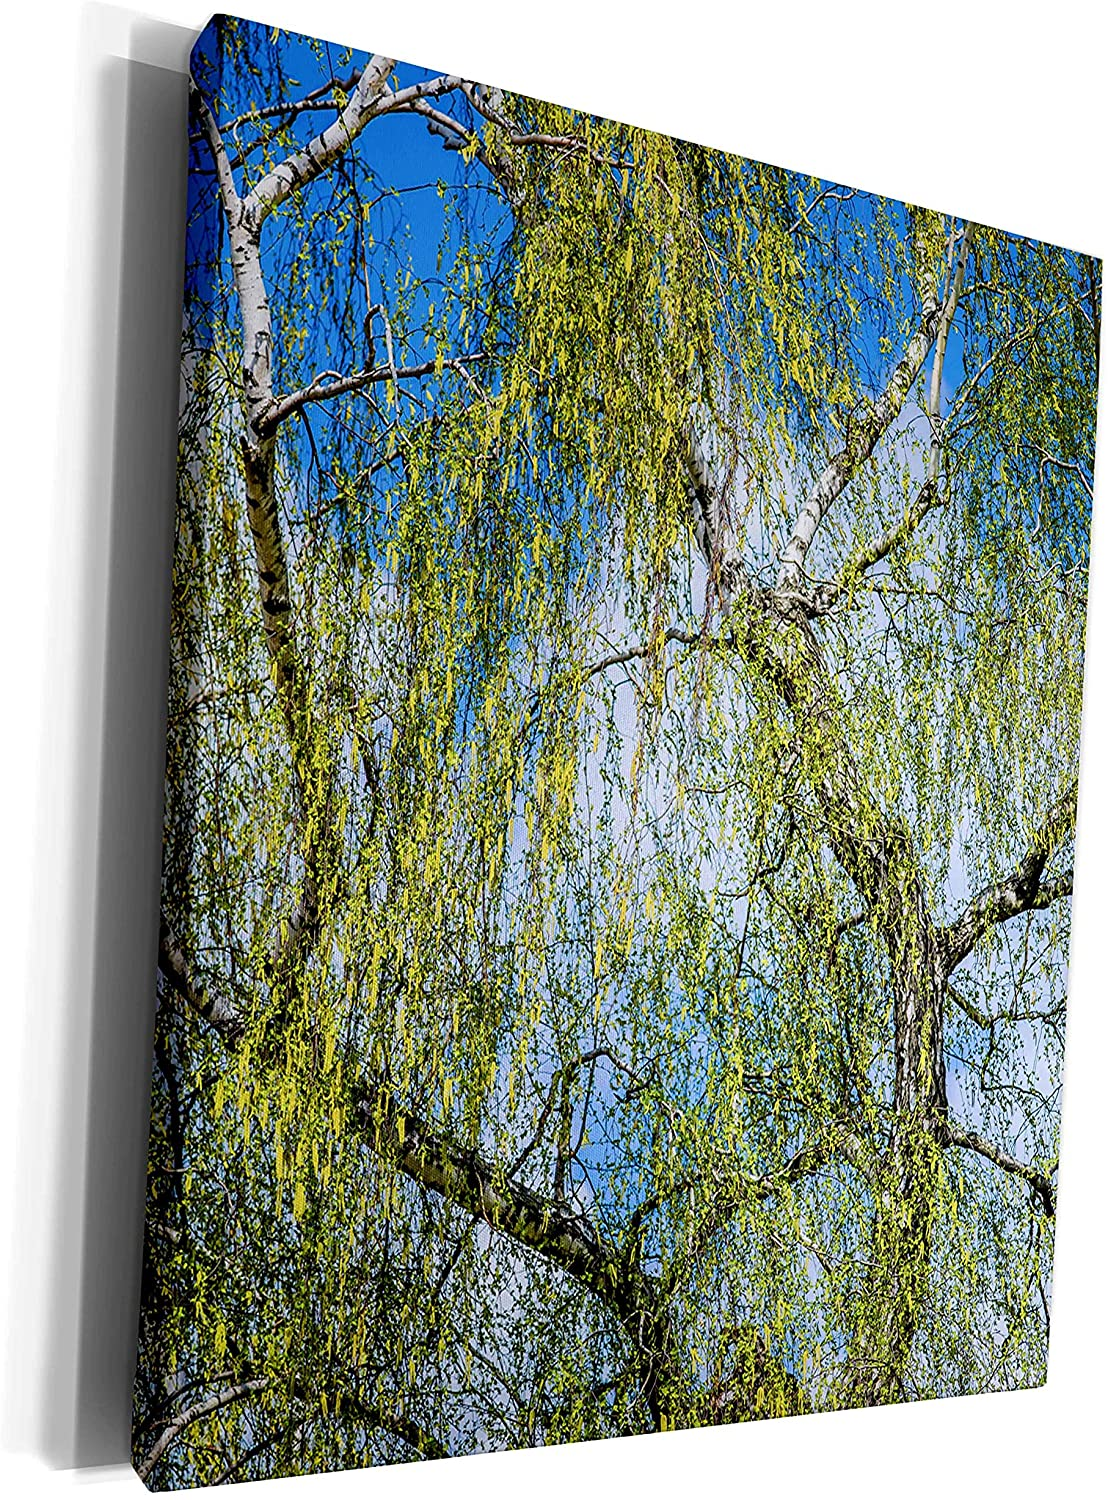 3dRose Alexis Photography - Seasons Spring - Birch tree catkins in bloom, blue sky, white cloud, spring season - Museum Grade Canvas Wrap (cw_281202_1)